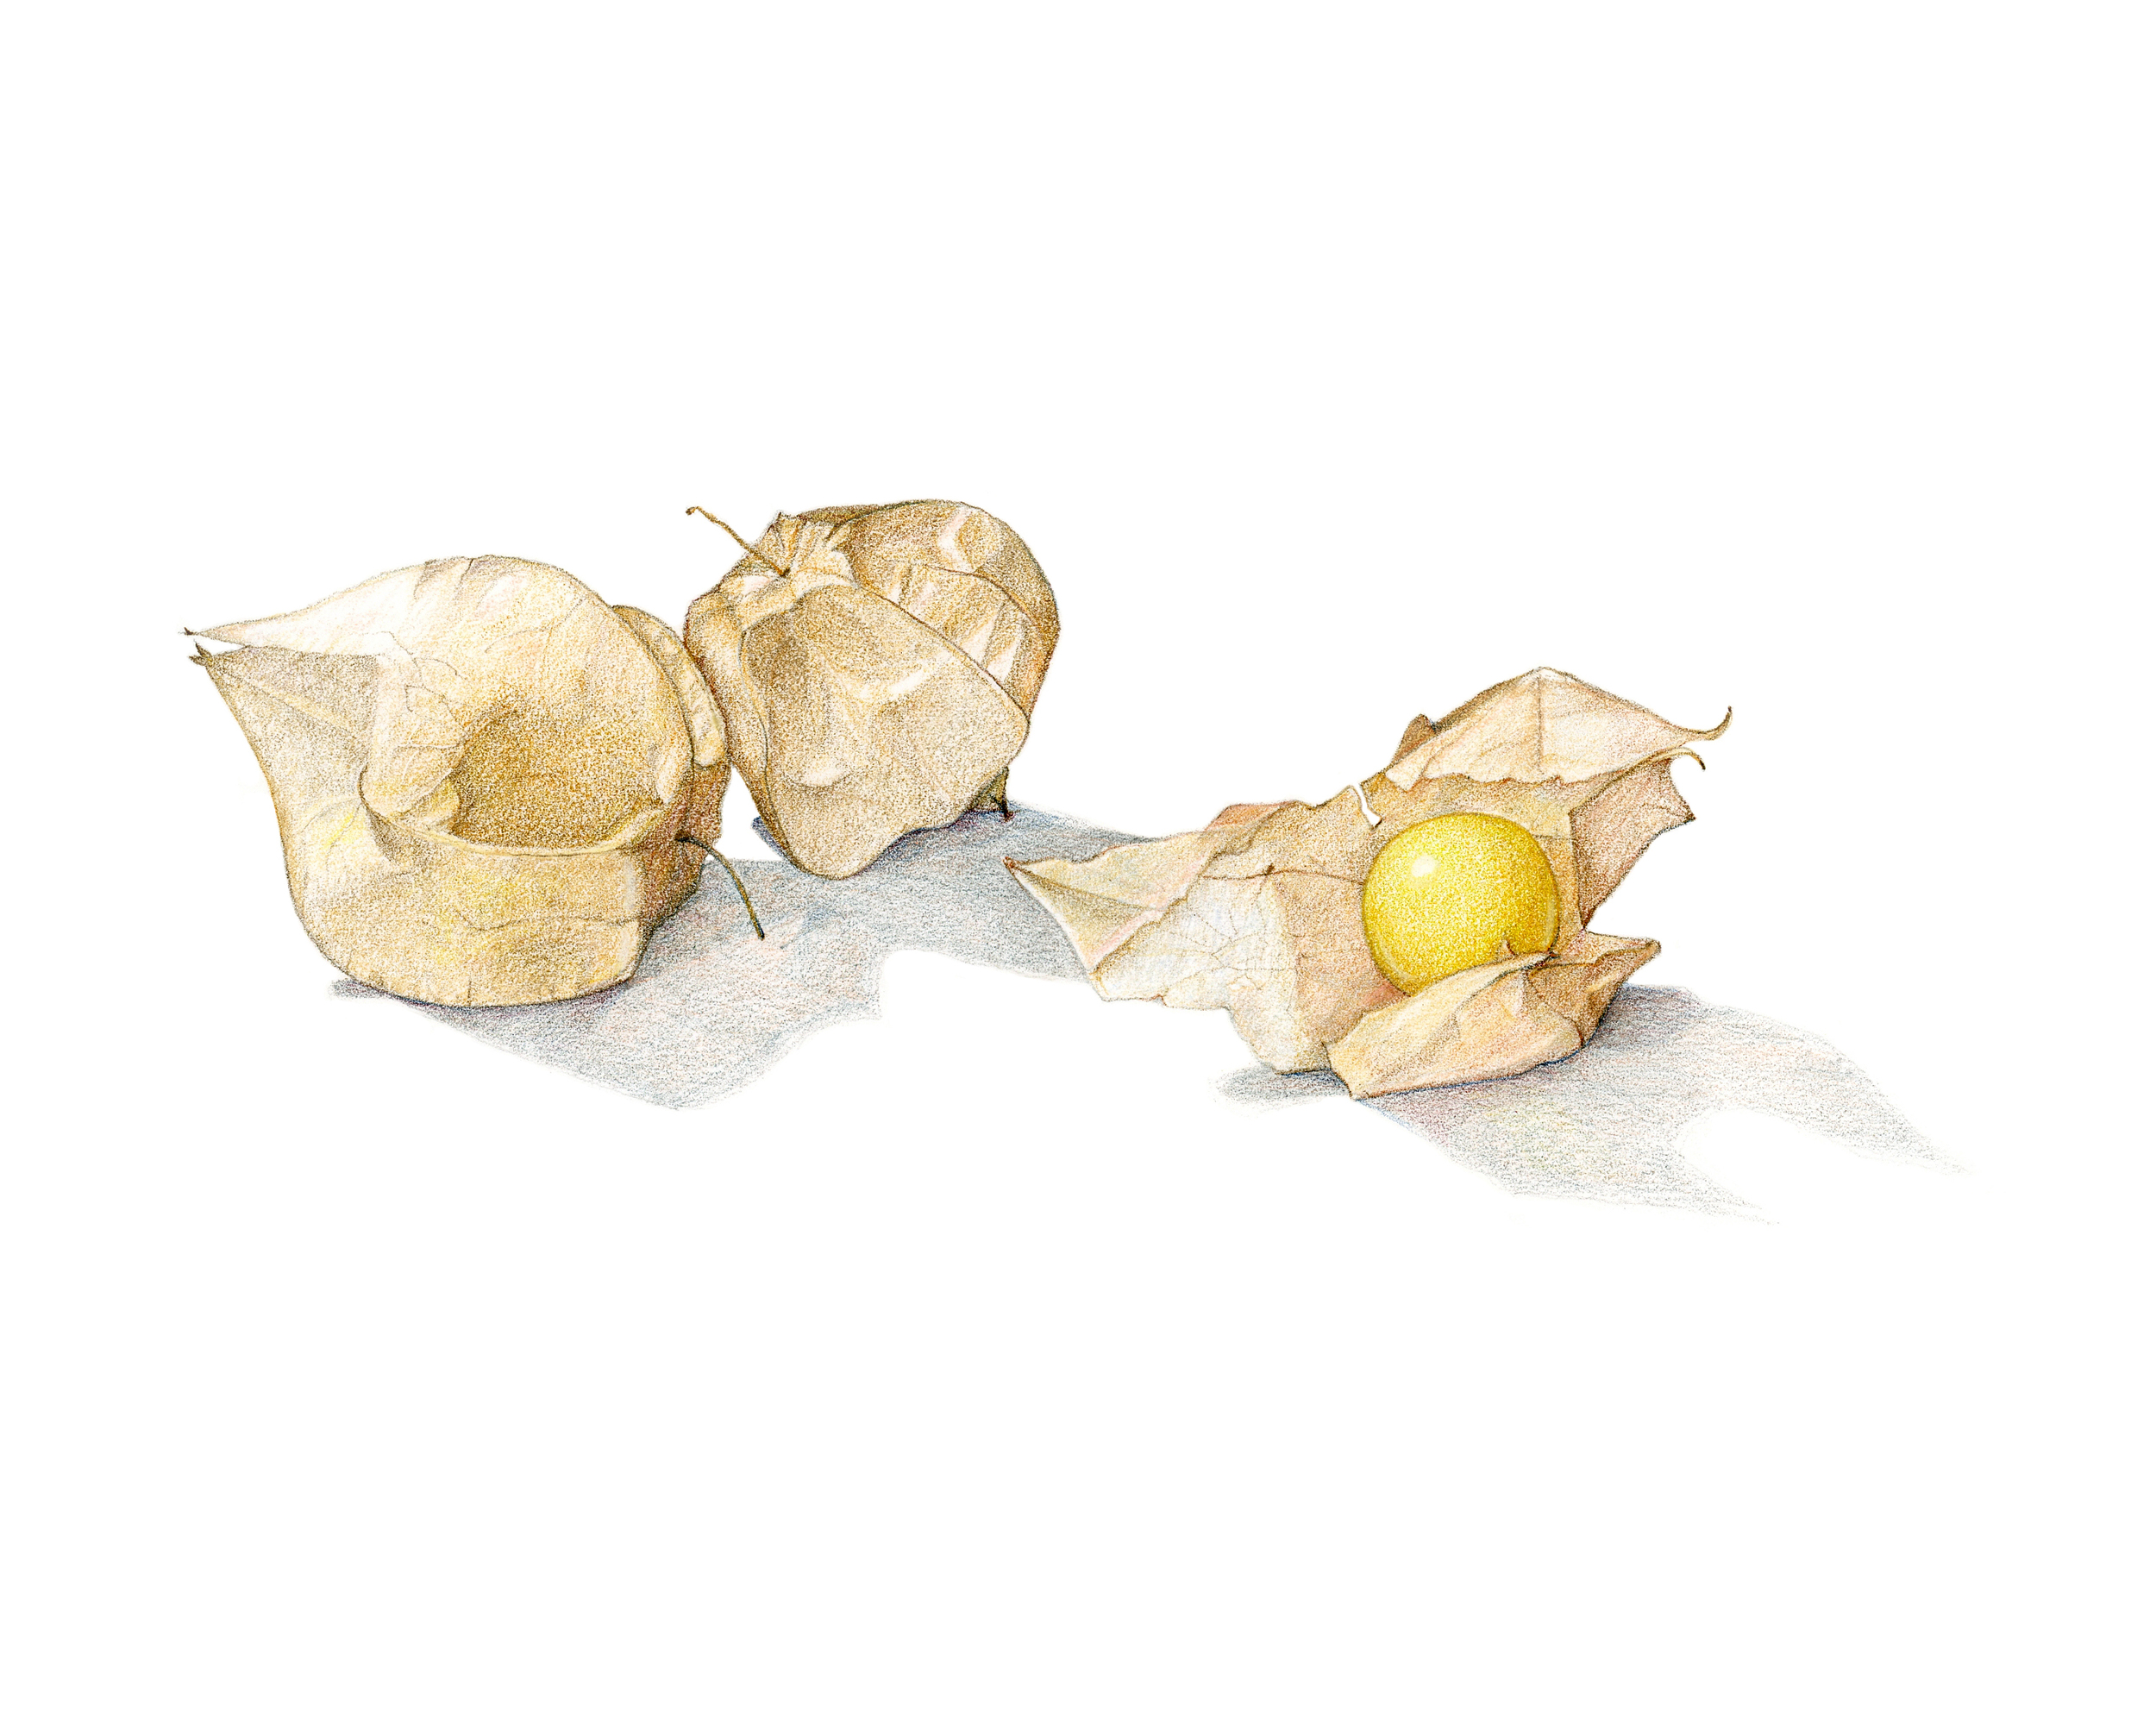 Ground cherries, colored pencil